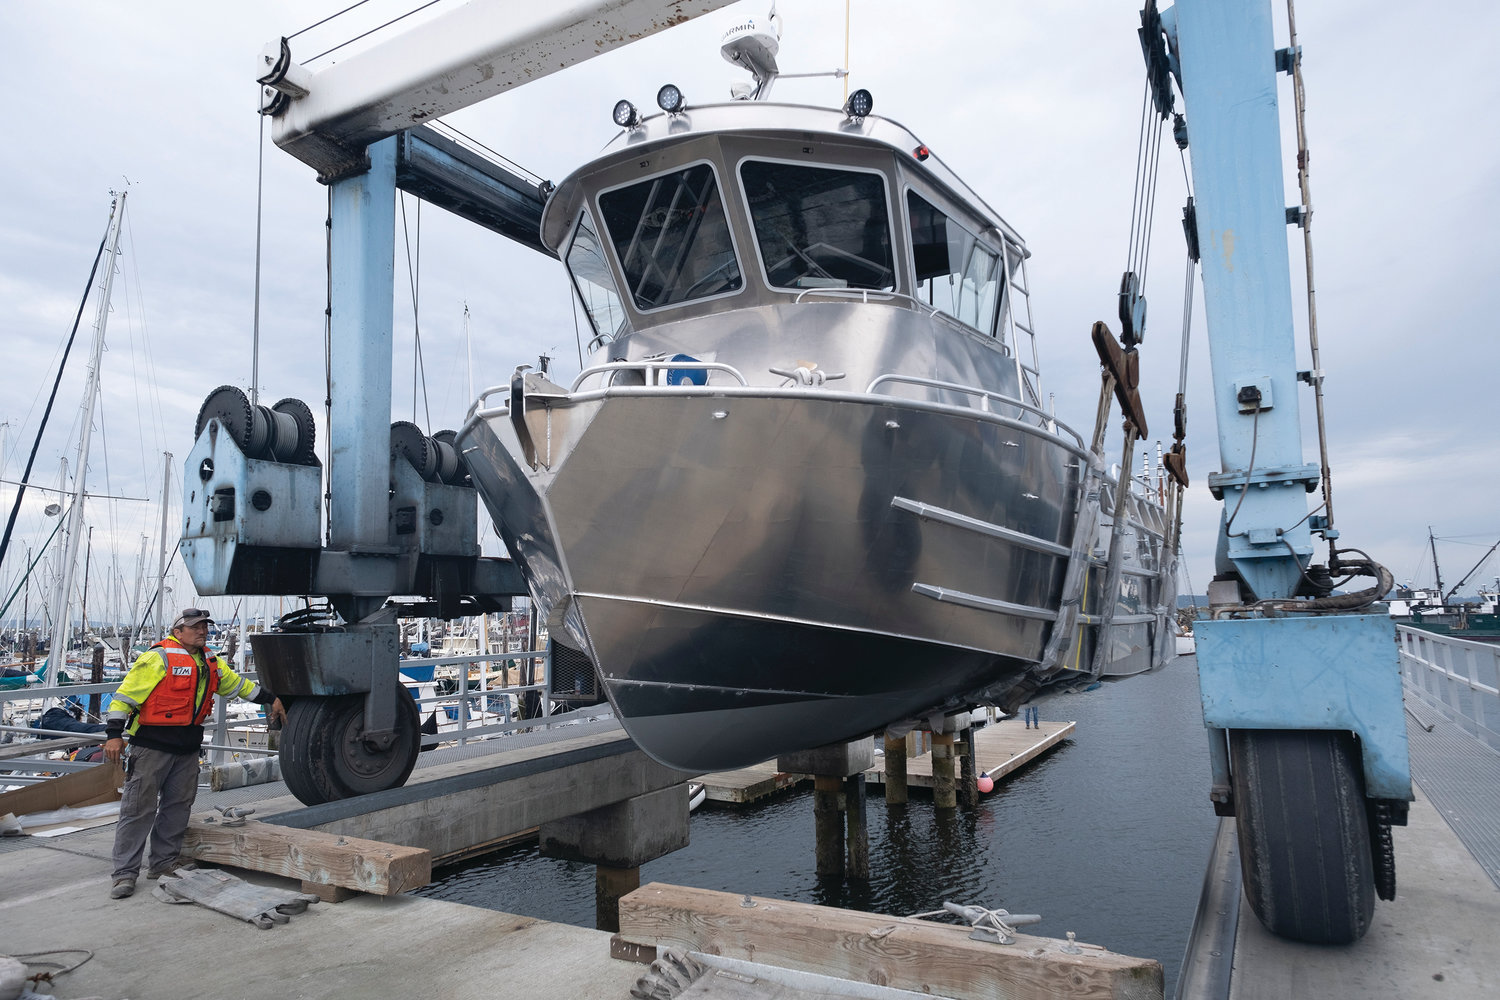 Construction on this new fishing boat began last fall at ACI Boats, and it was launched last week in the midst of the coronavirus pandemic. The vessel is heading north to Bristol Bay for the summer fishing season.